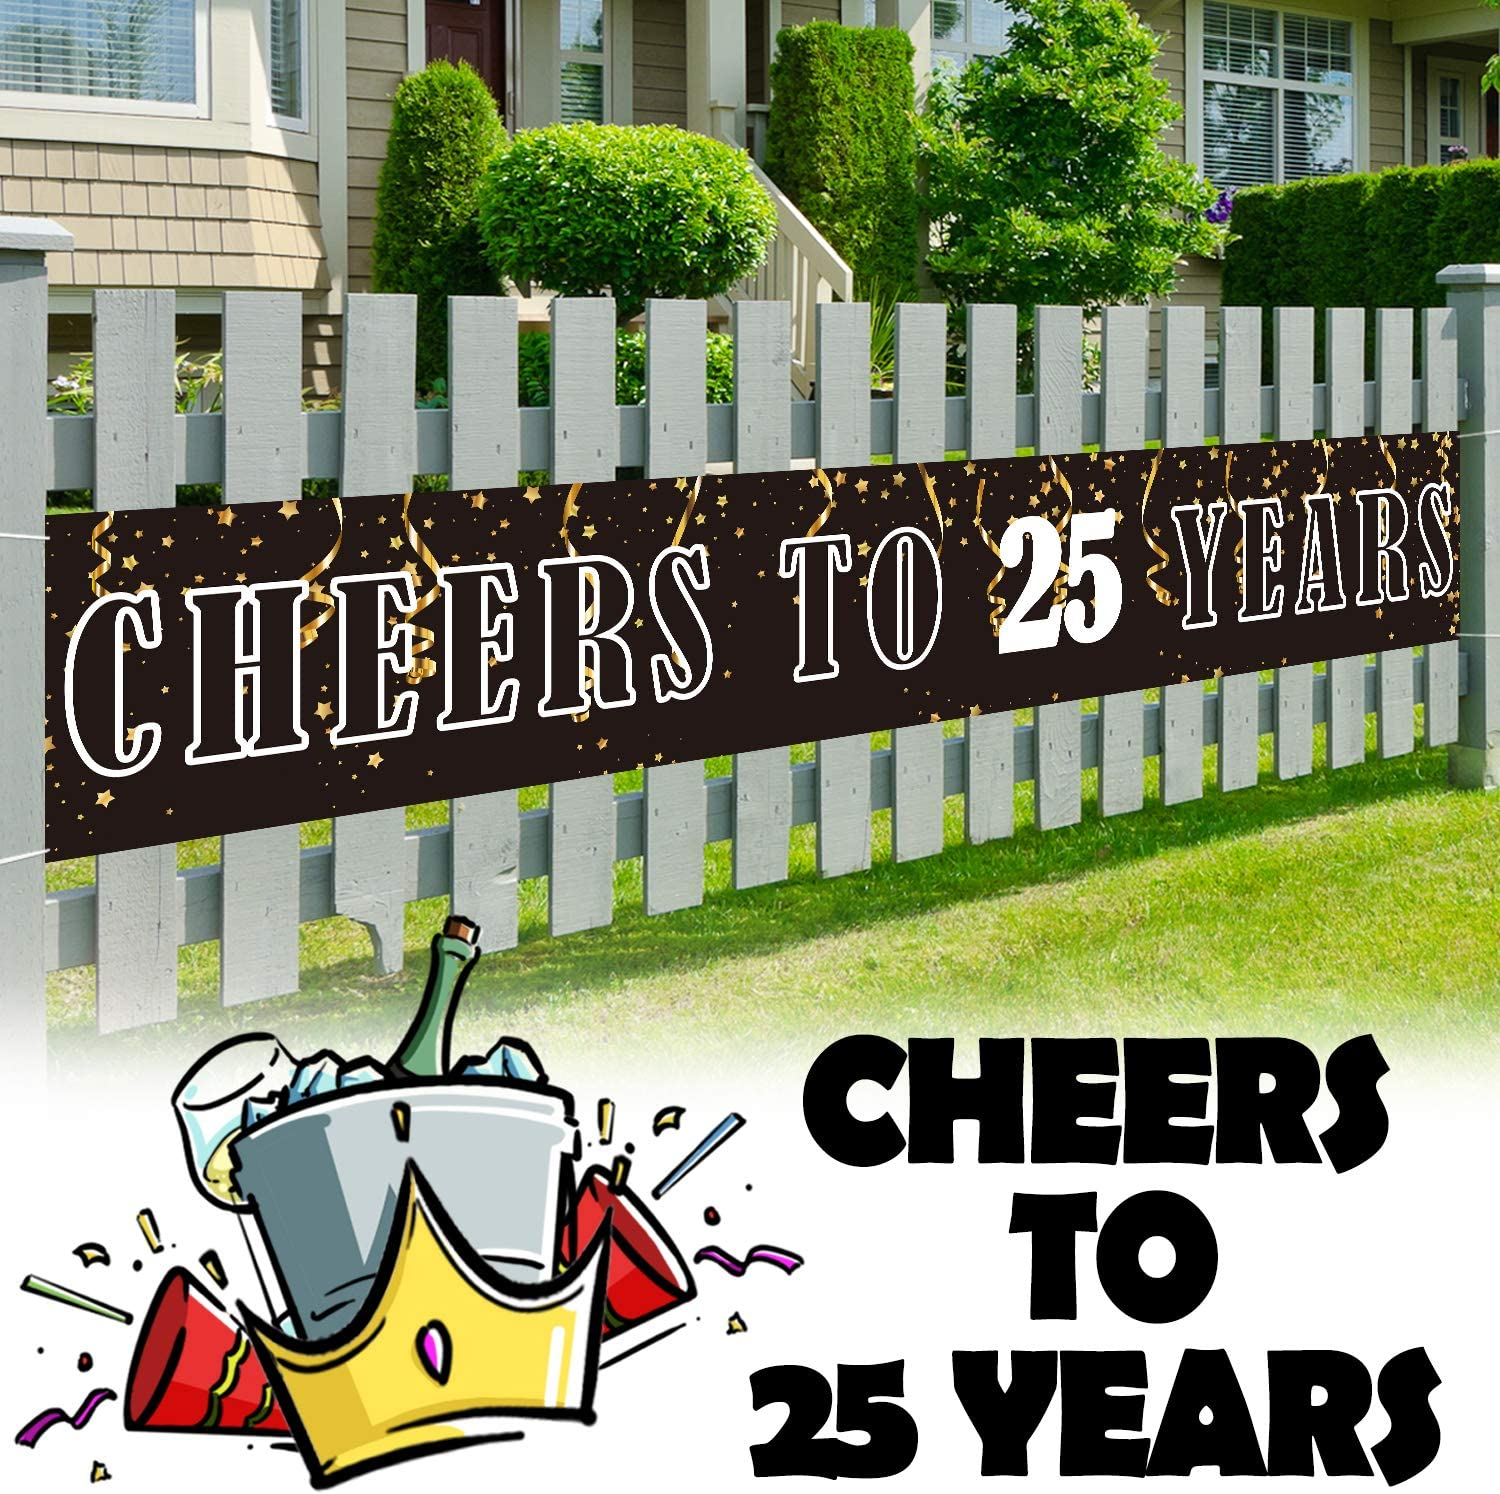 LINGPAR 9.8 x 1.6 ft Large Sign Birthday Or Wedding Anniversary Decor - Cheers to 25 Years Banner